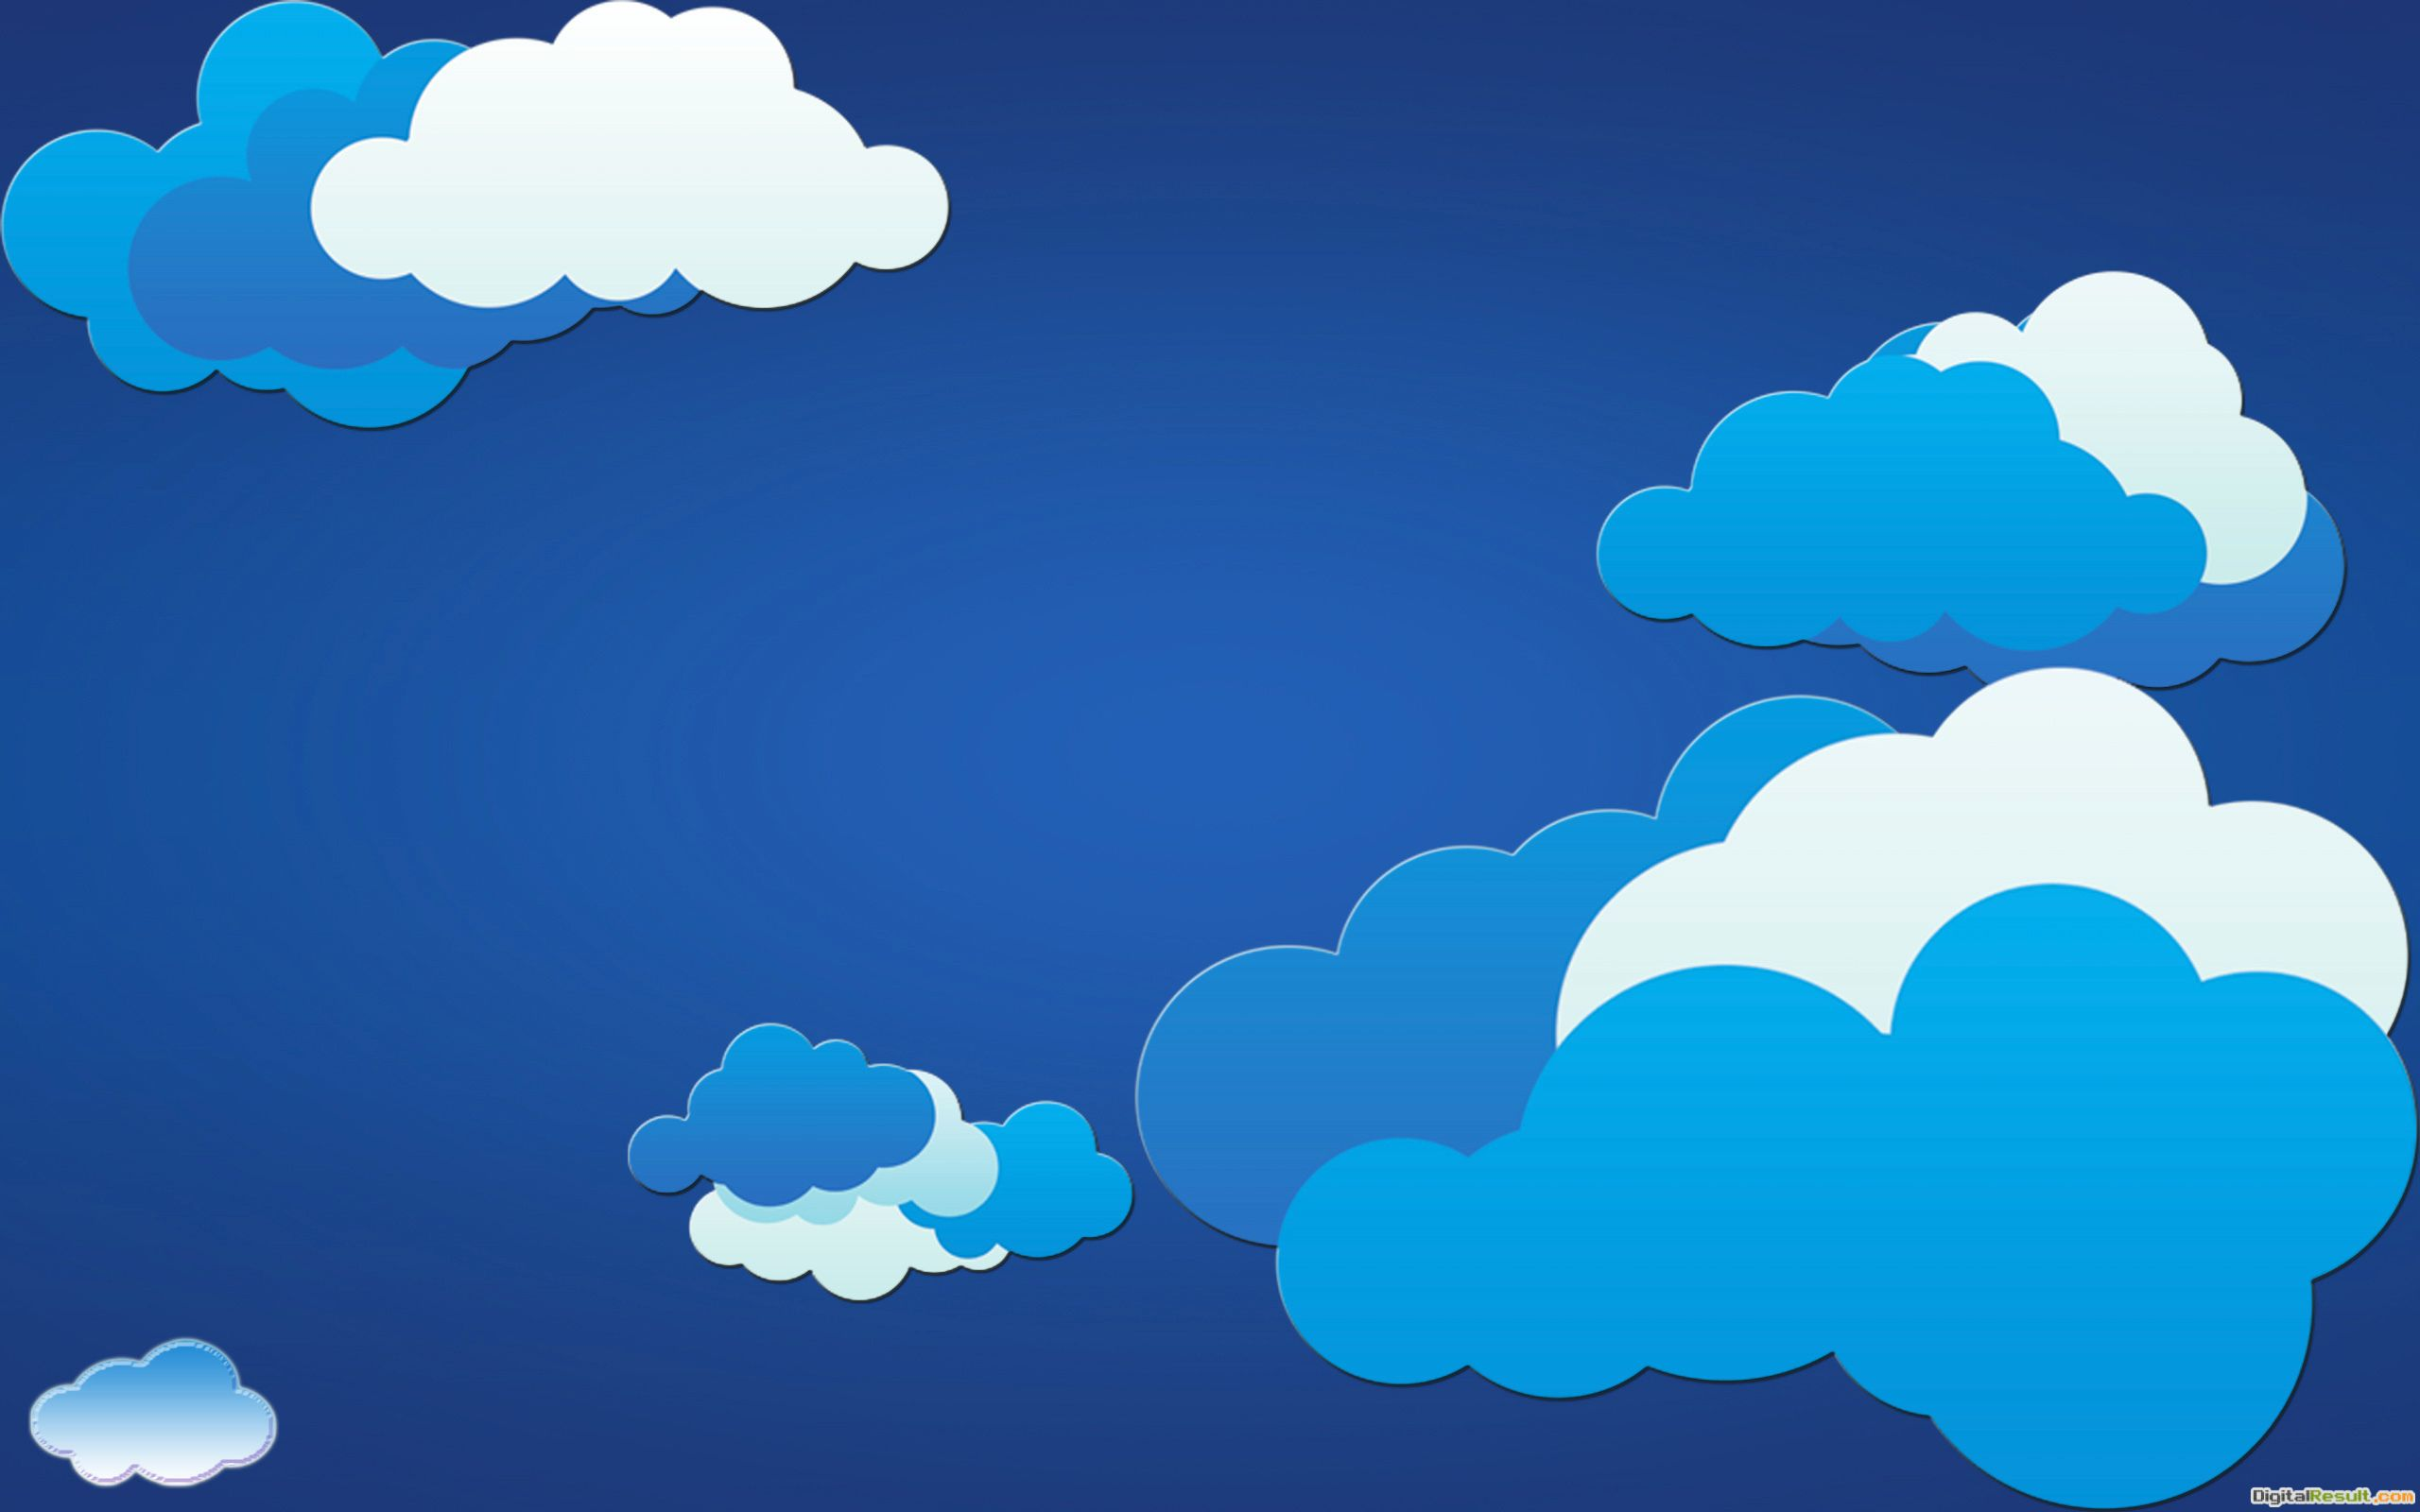 minimalism, art, vector, drawing by illustrator, clouds, background 118